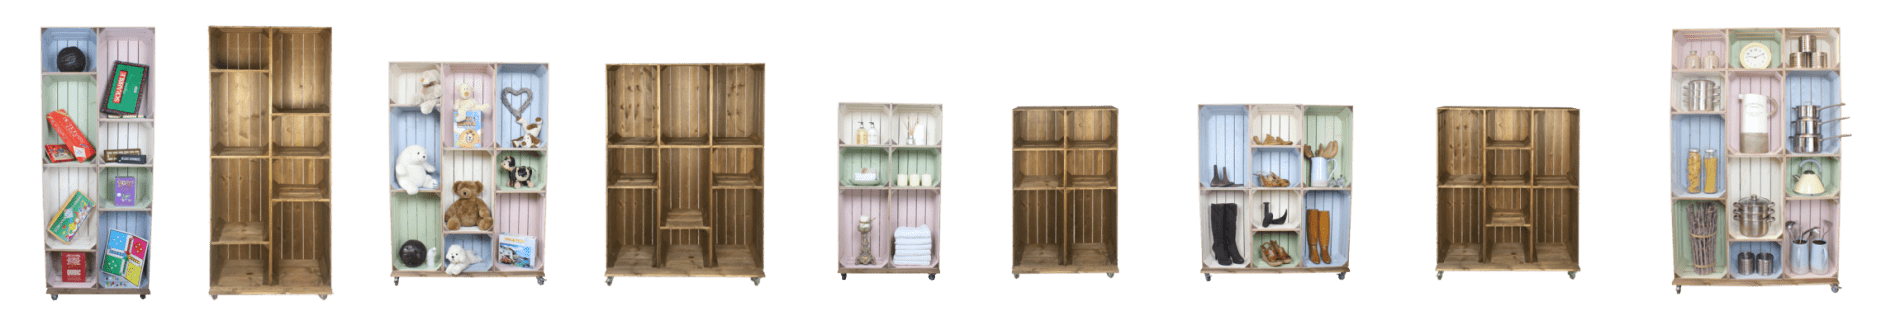 Crate Wall Displays